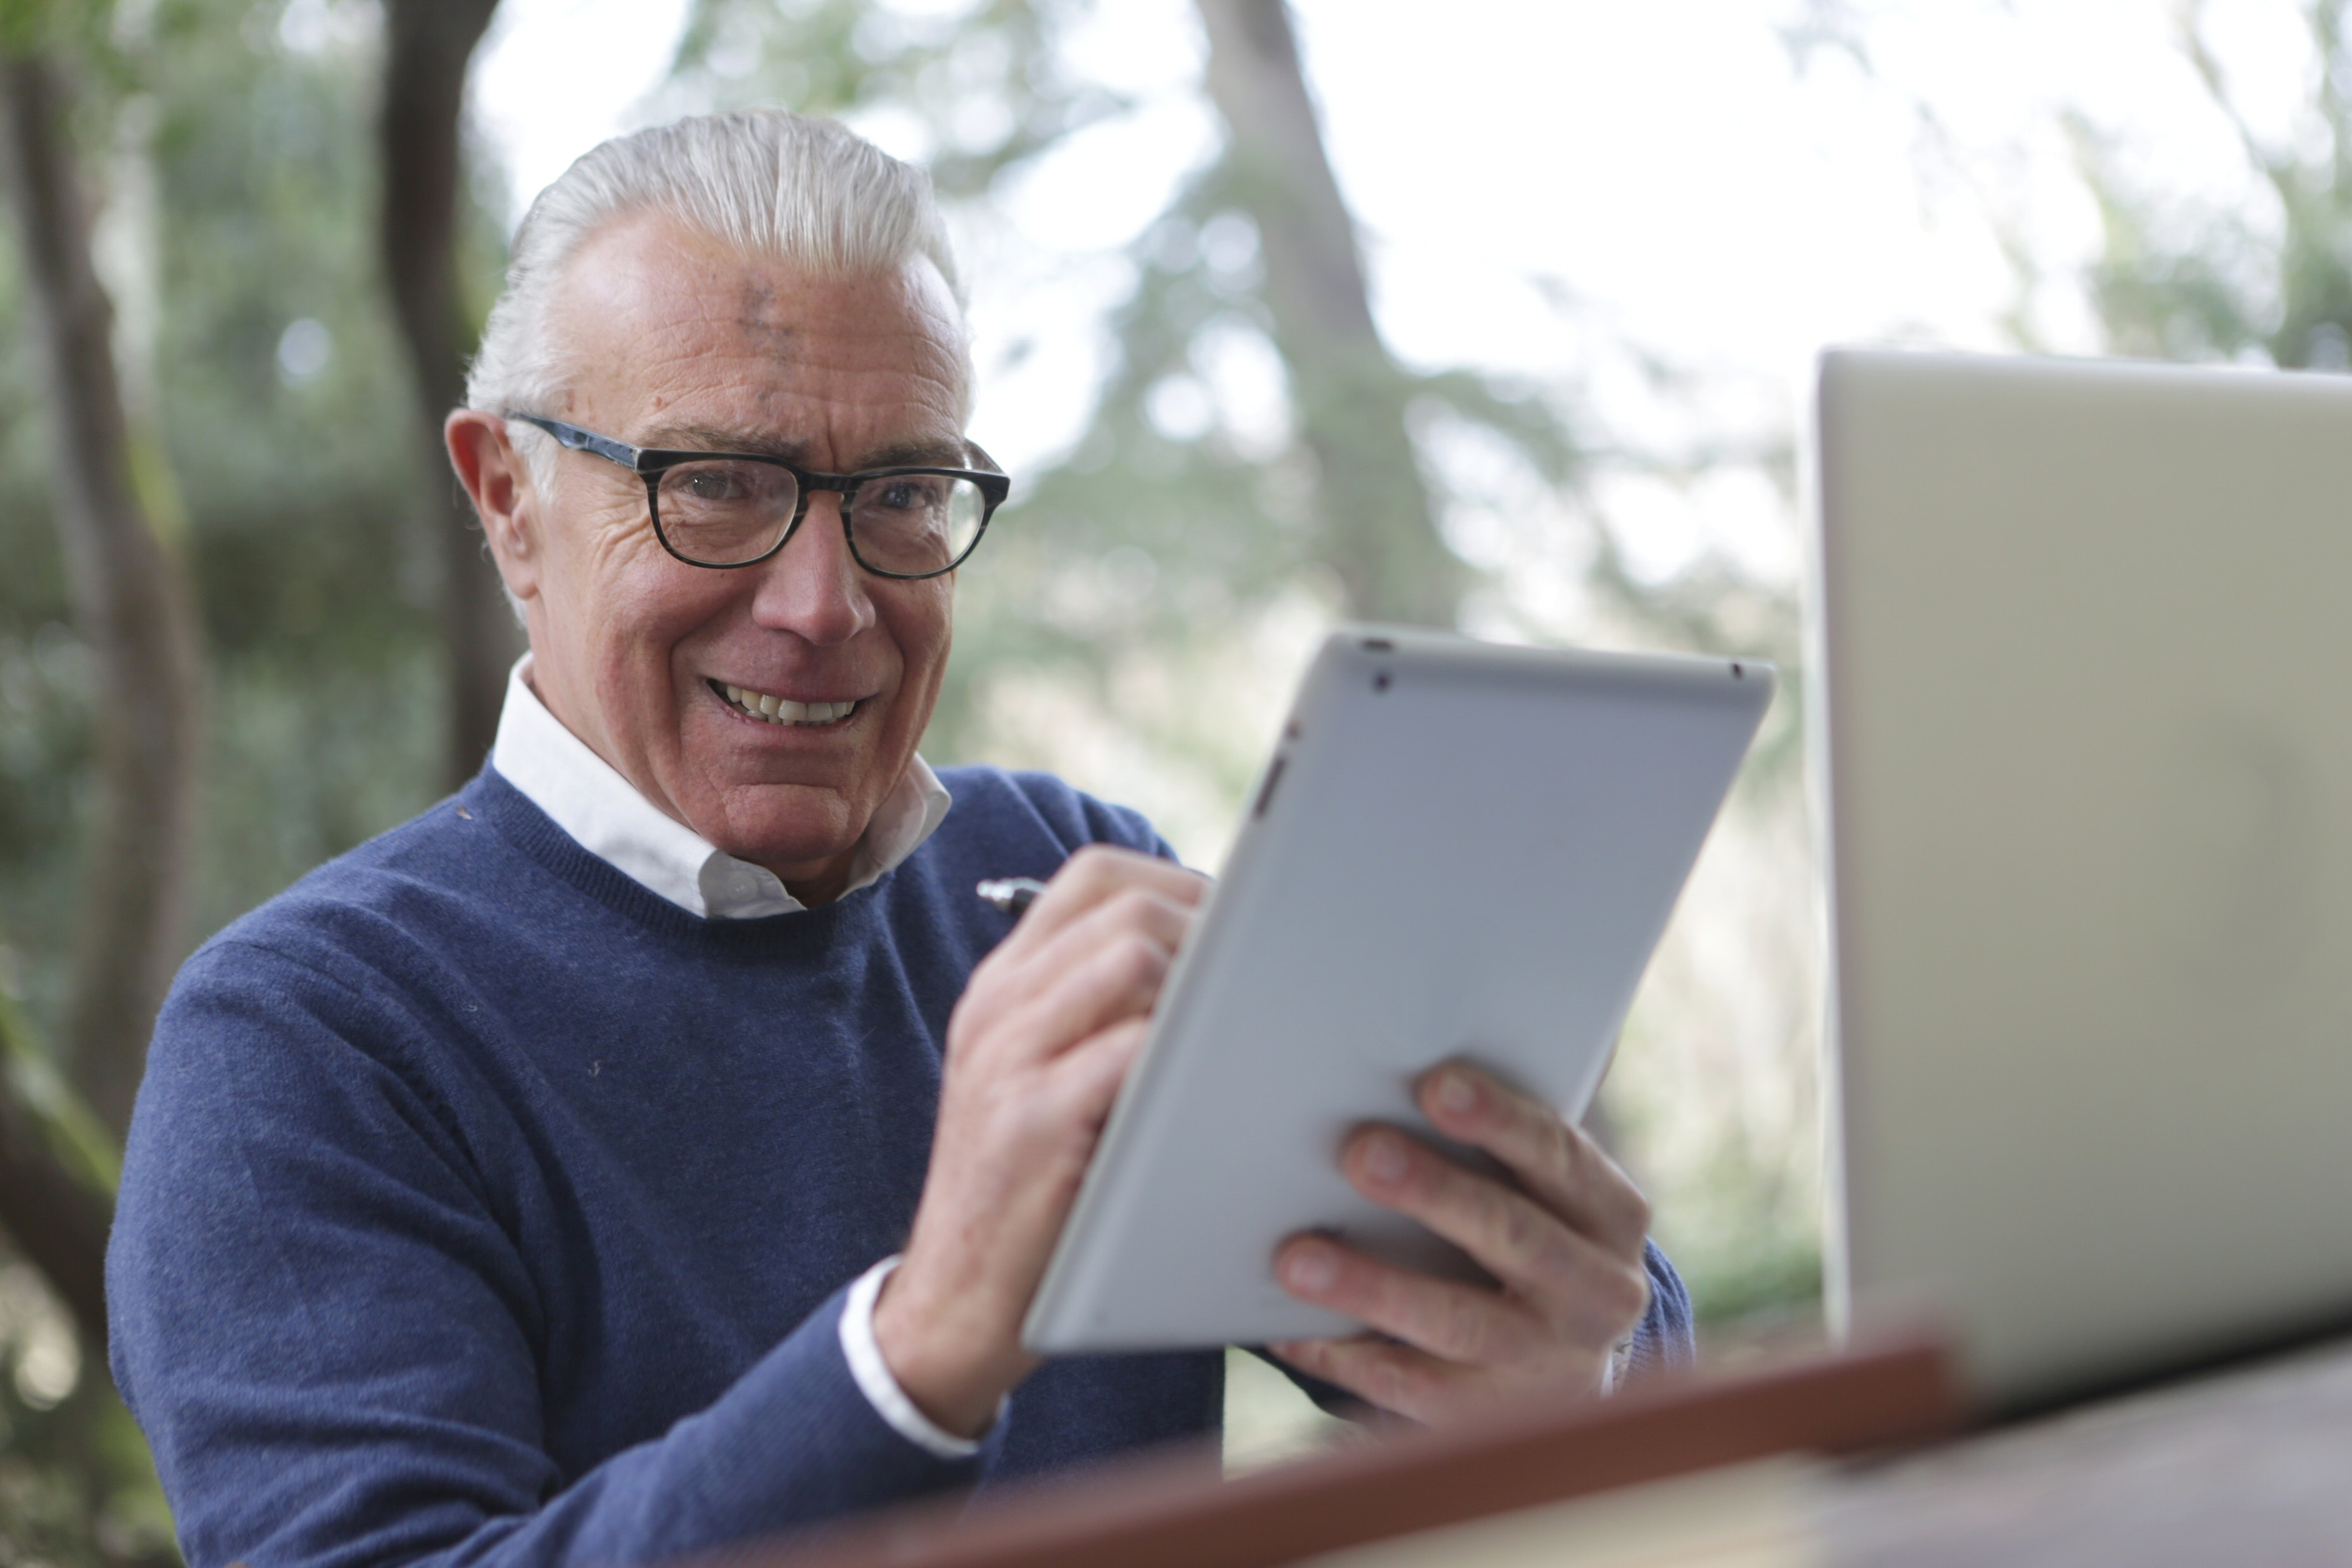 older man using an iPad